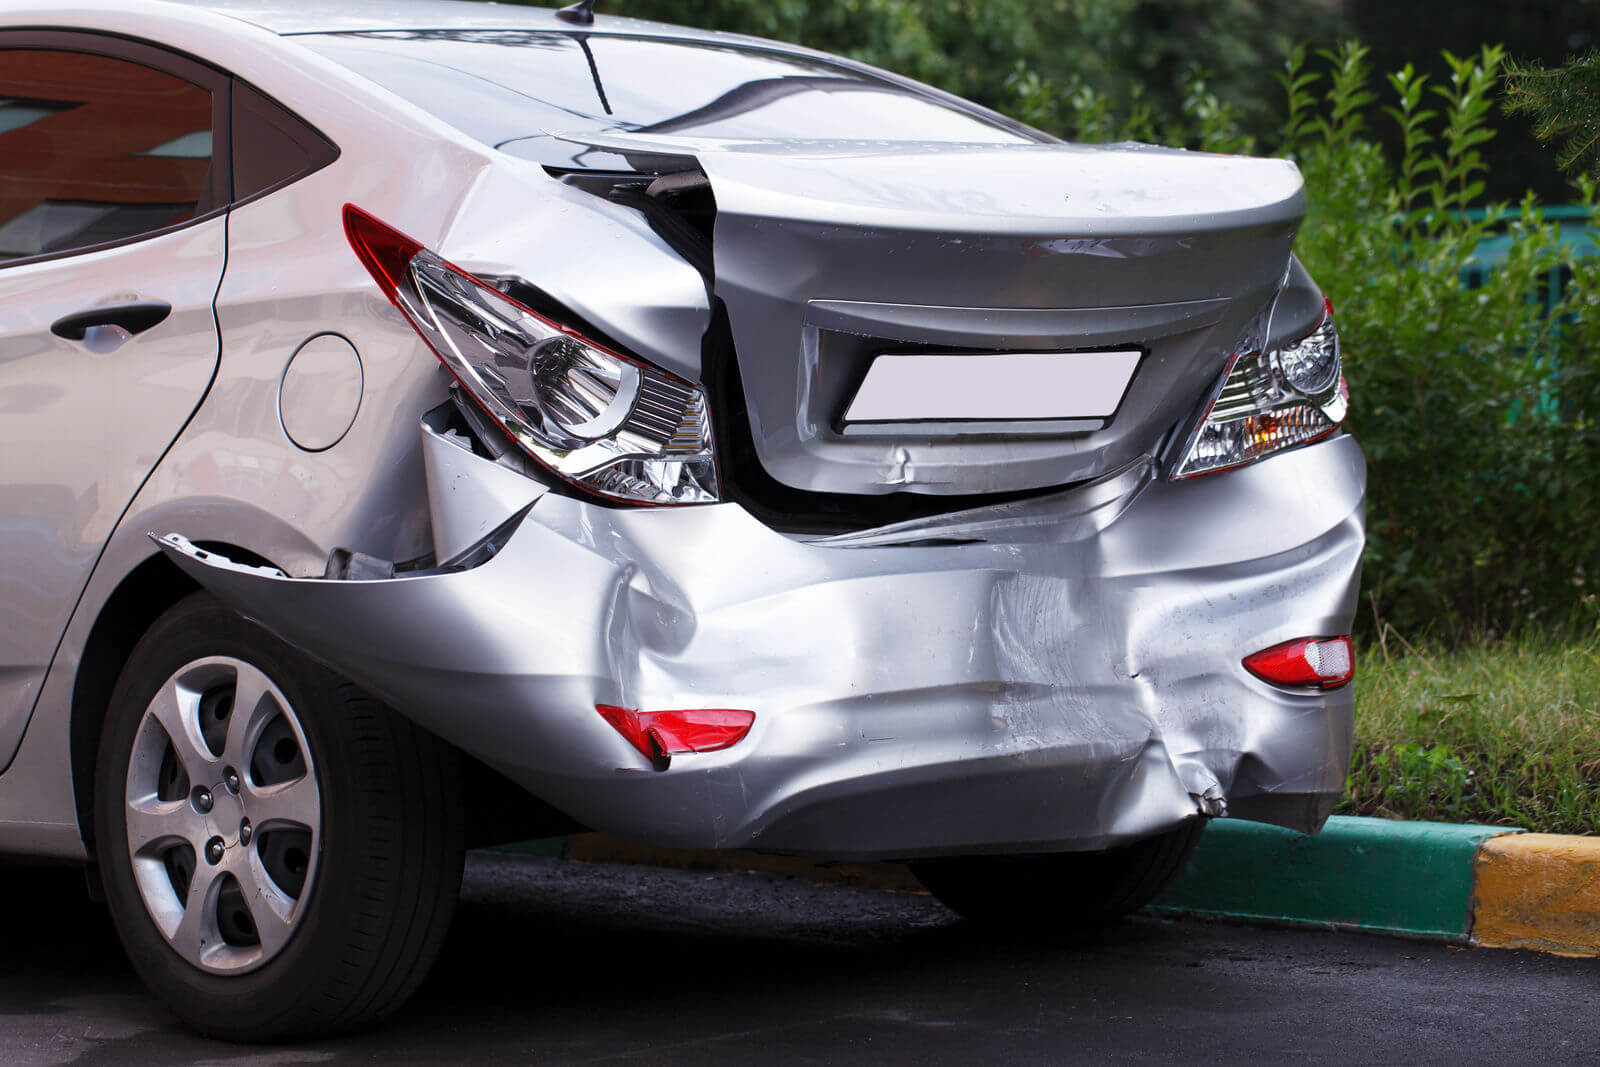 How To Add Additional Coverage To Your Auto Insurance Policy